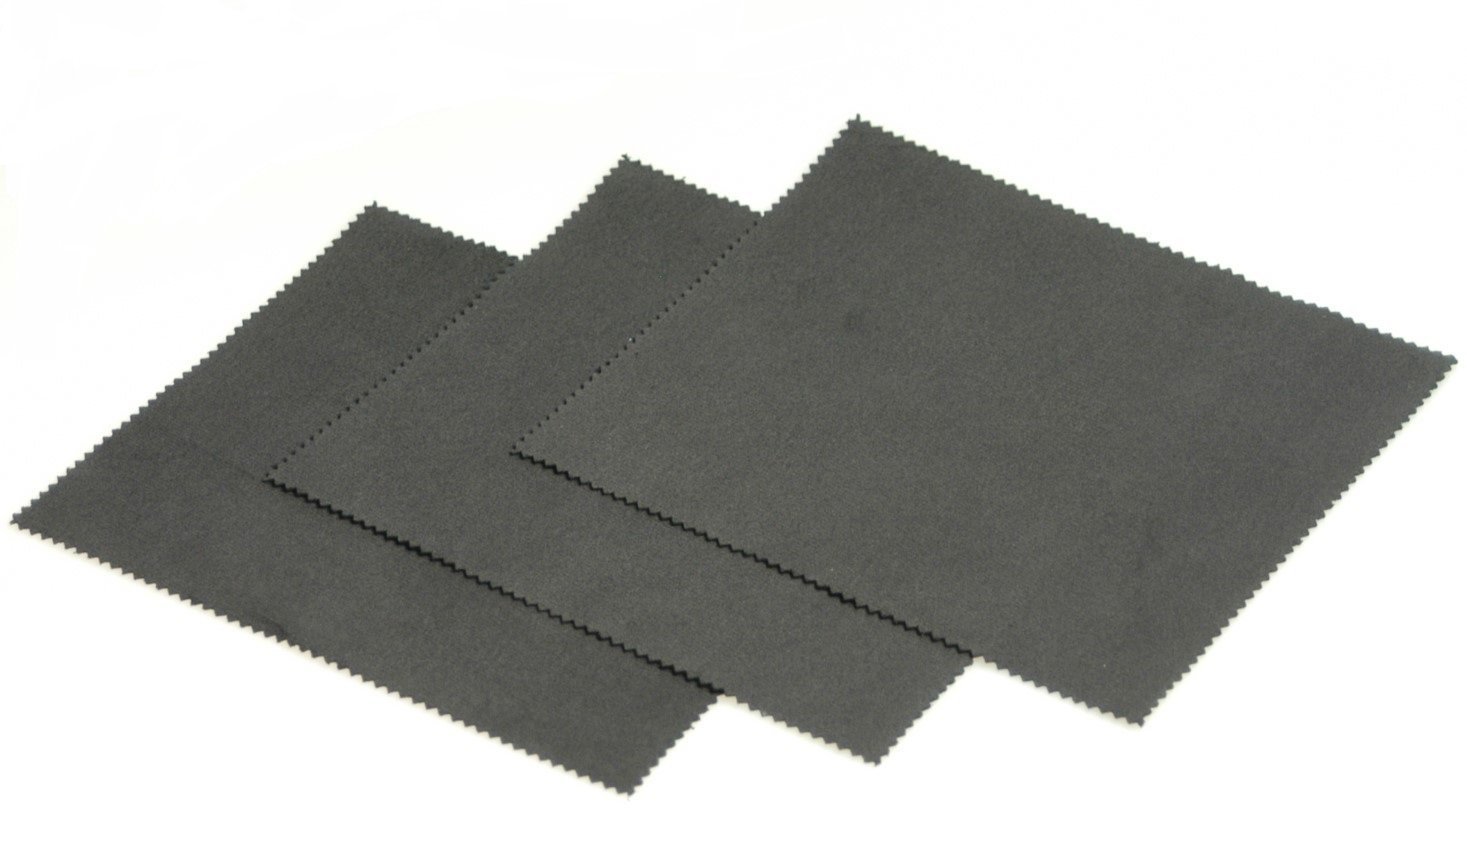 Horosafe Buffing Cleaning Cloth for Watches - Black (7x6) - 3 pack